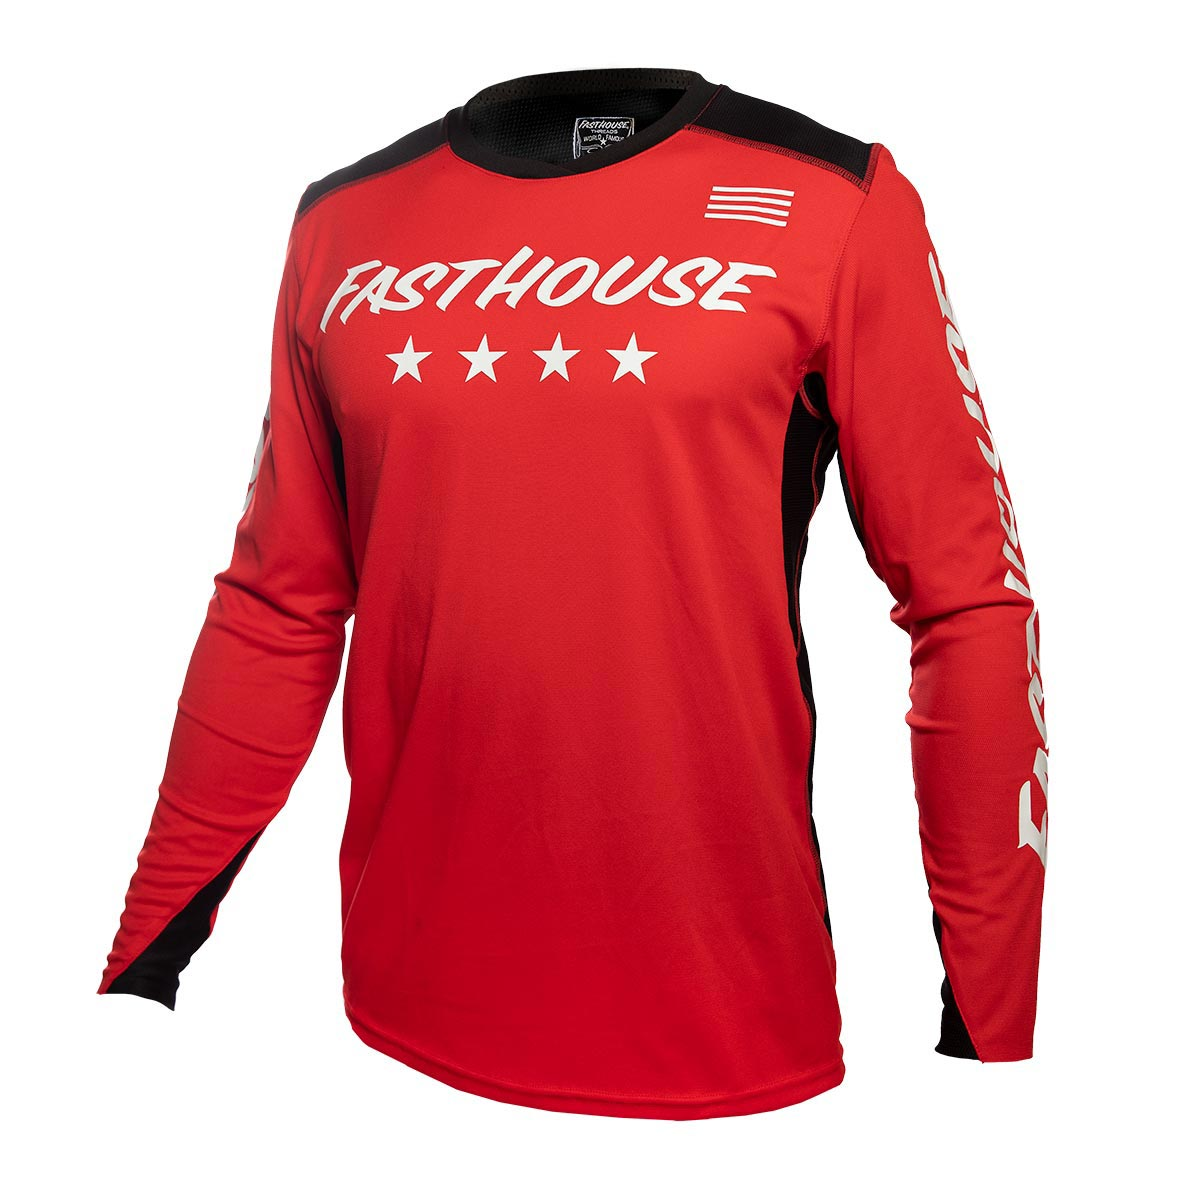 Fasthouse - Raven L1 Jersey - Red/Black